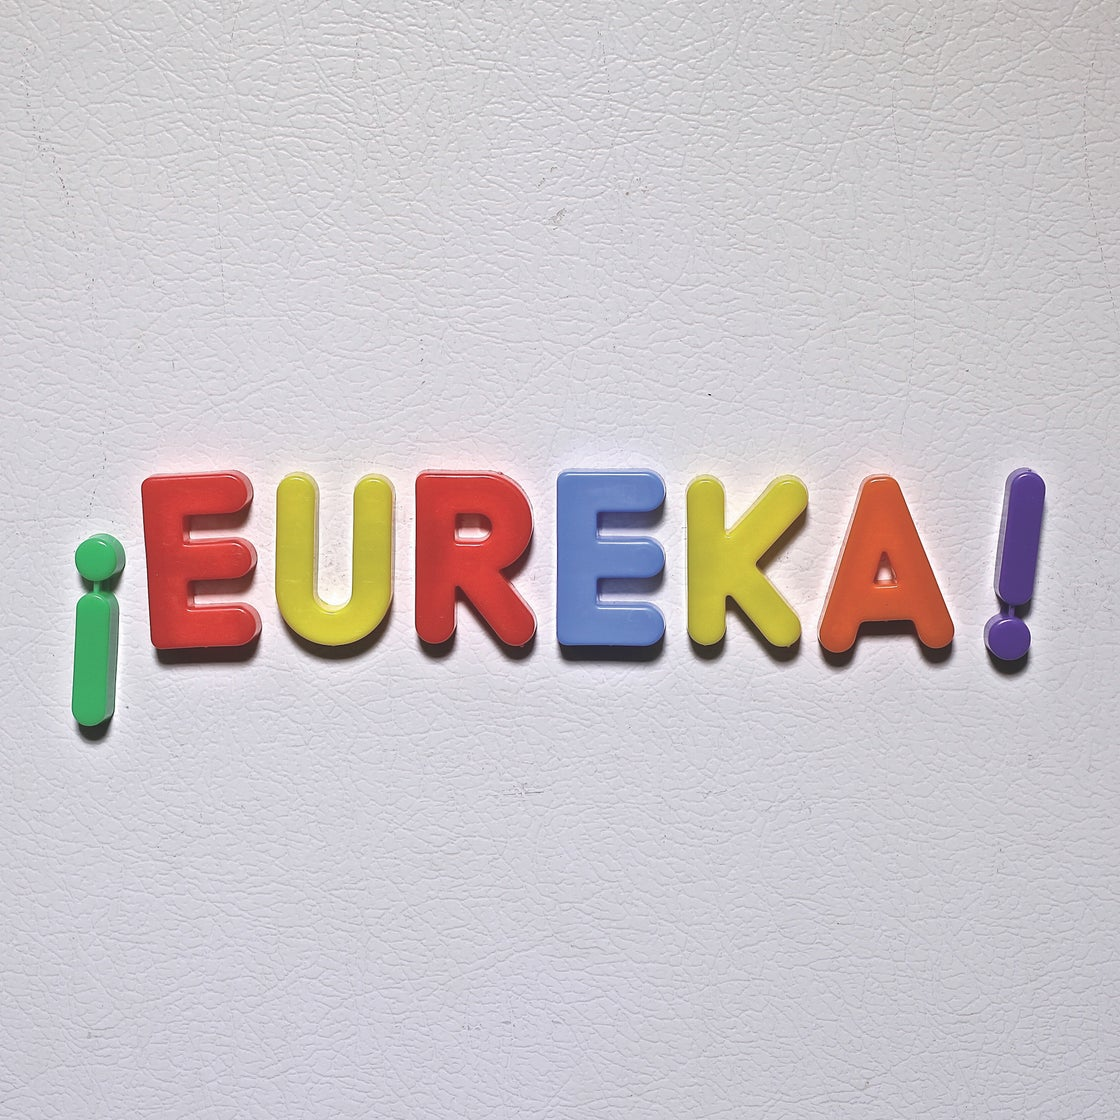 Image of ¡EUREKA! - Eureka The Butcher